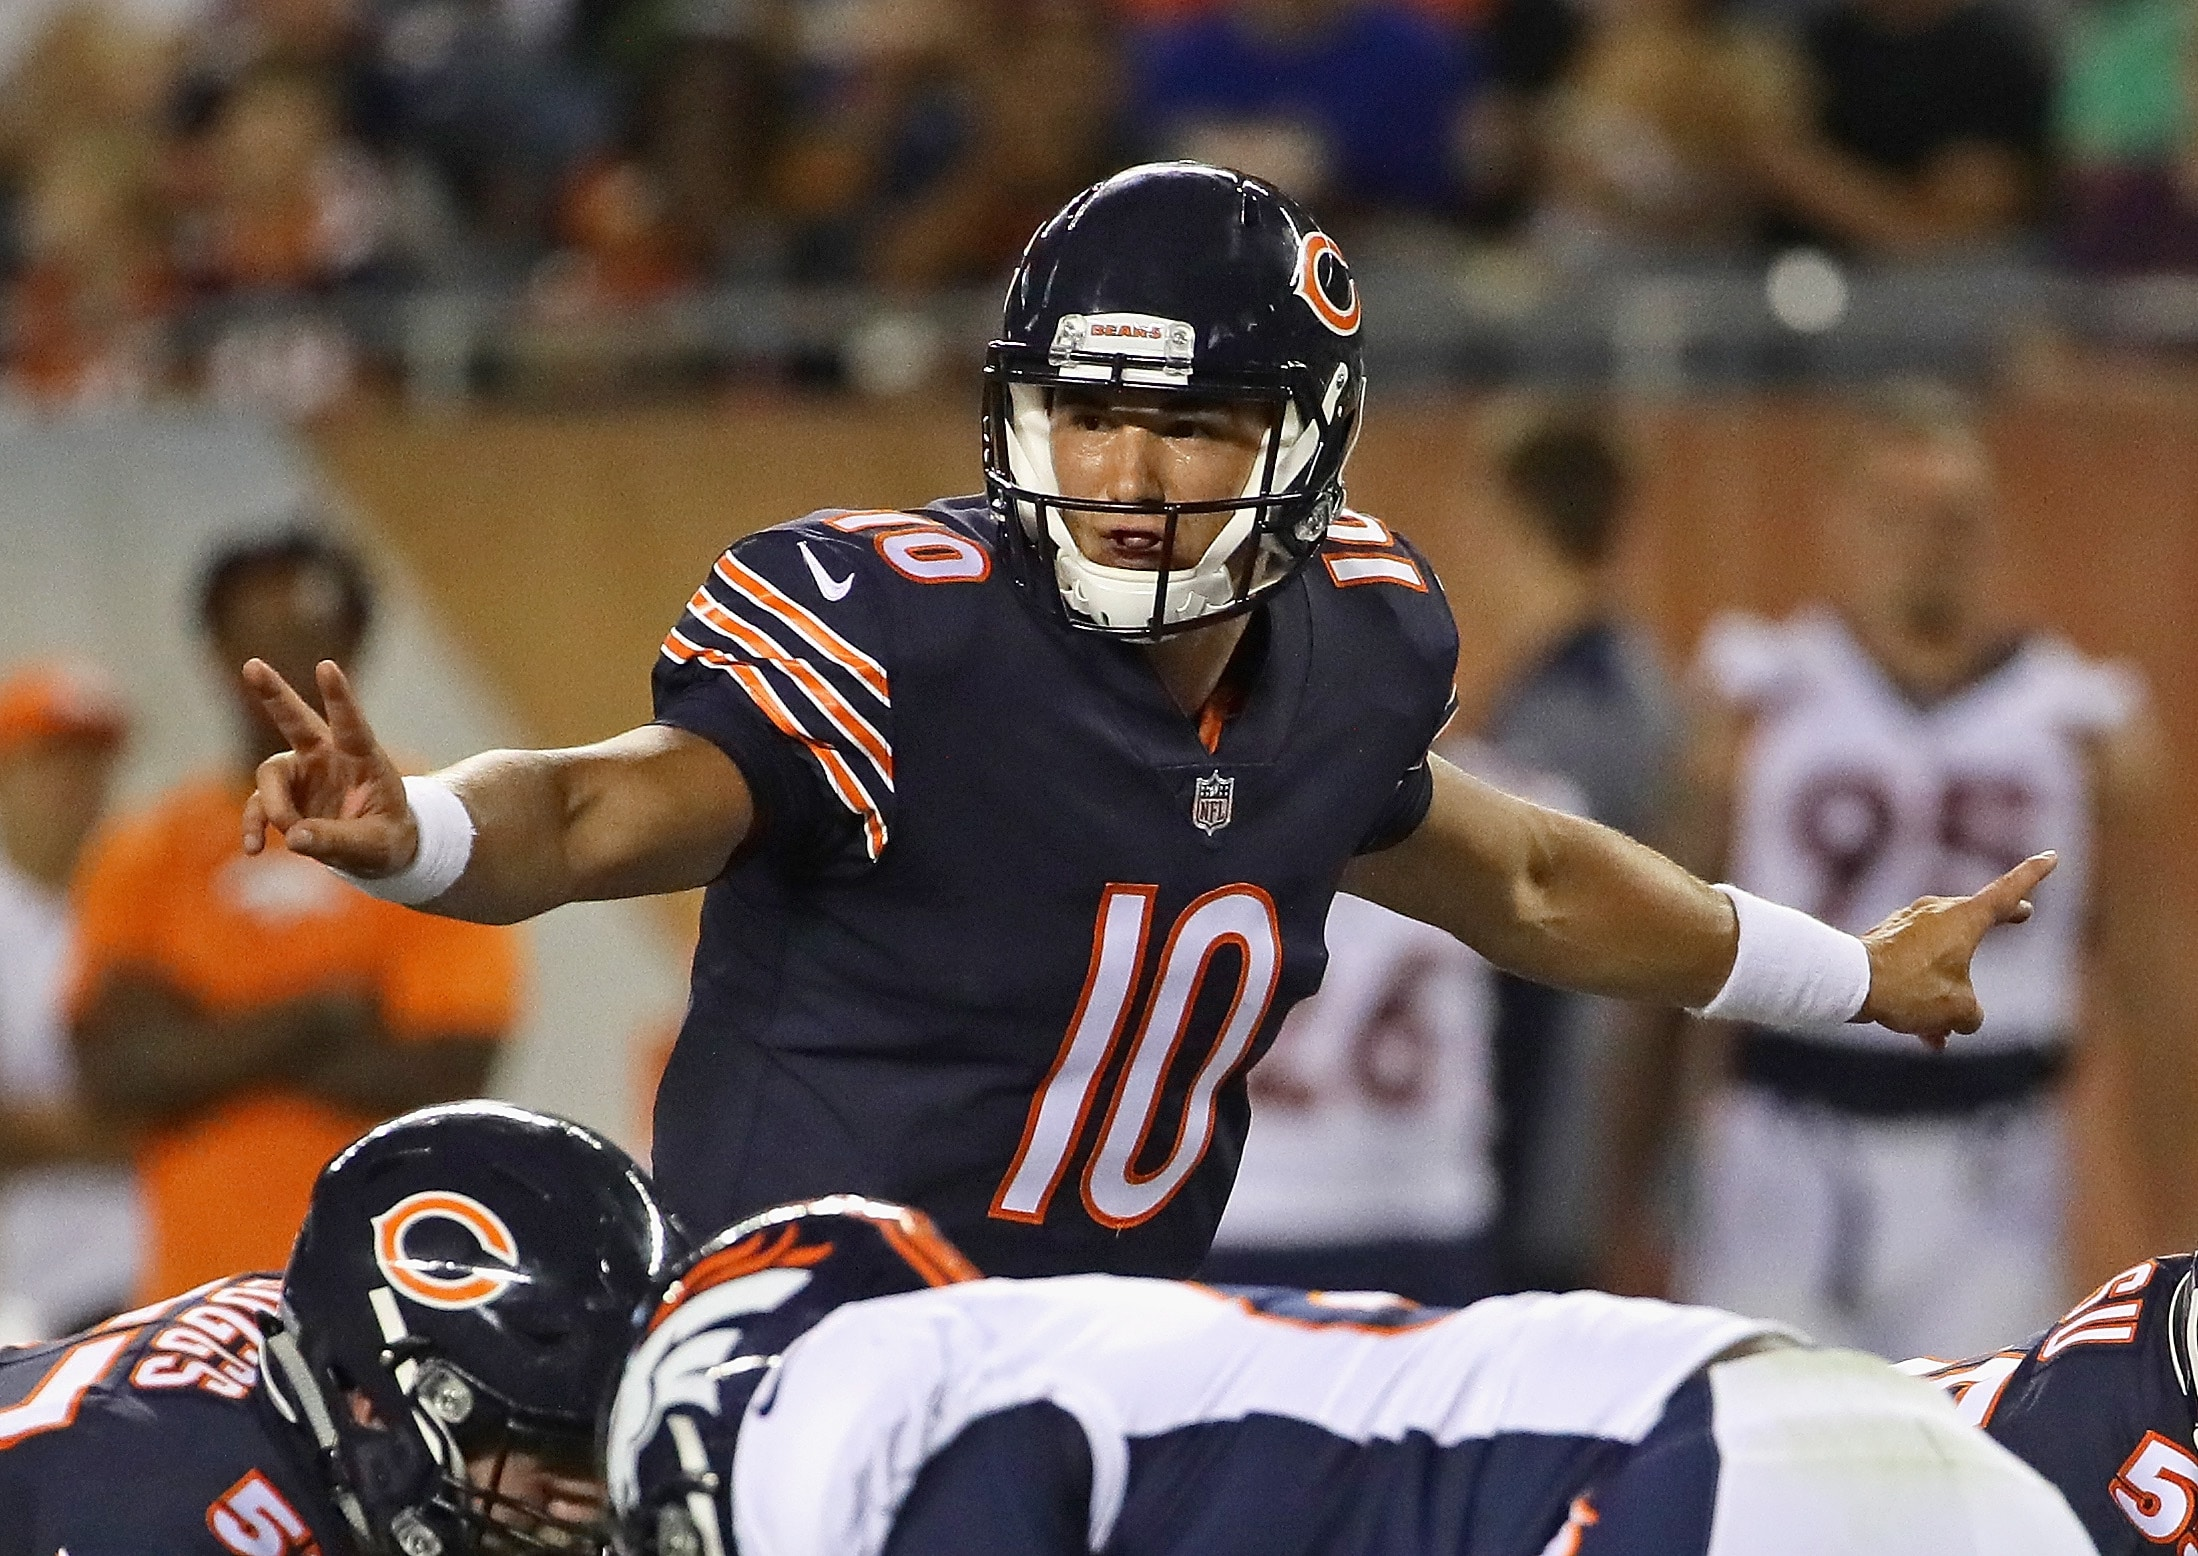 Bears rookie QB Mitch Trubisky impresses in National Football League preseason debut